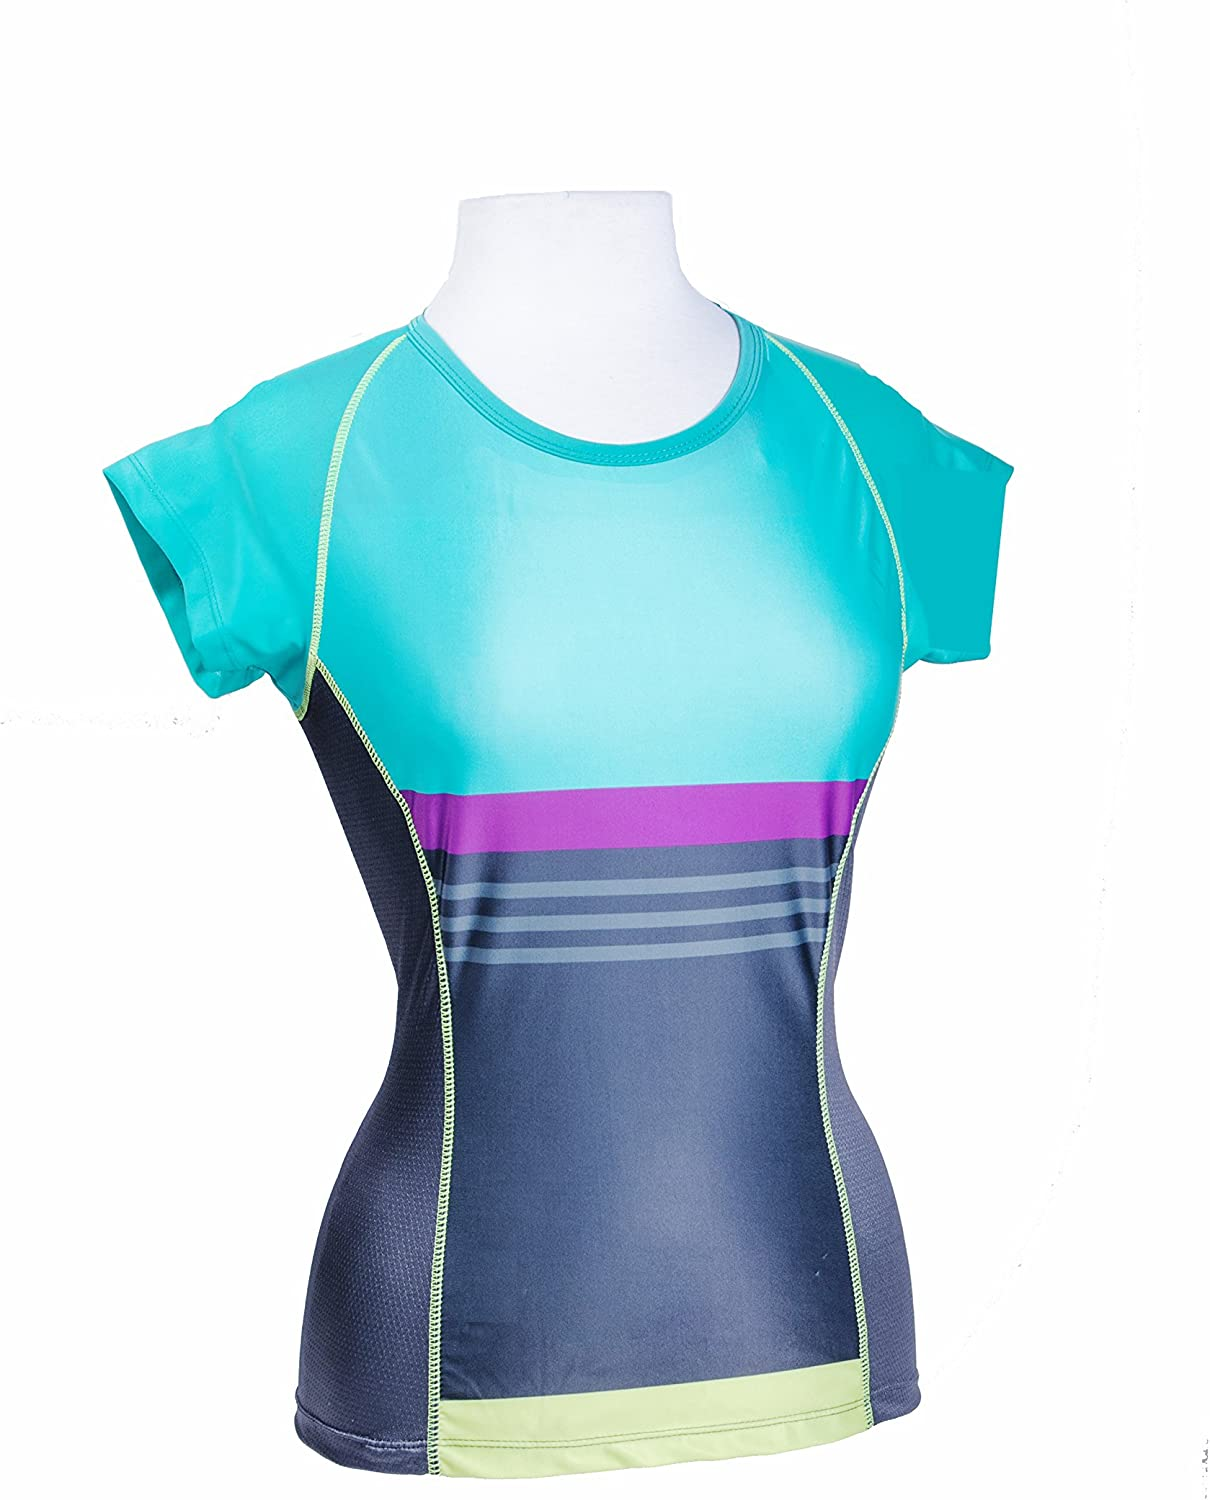 Moxie Cycling Women's Color Jersey Spasm price Block Tee security